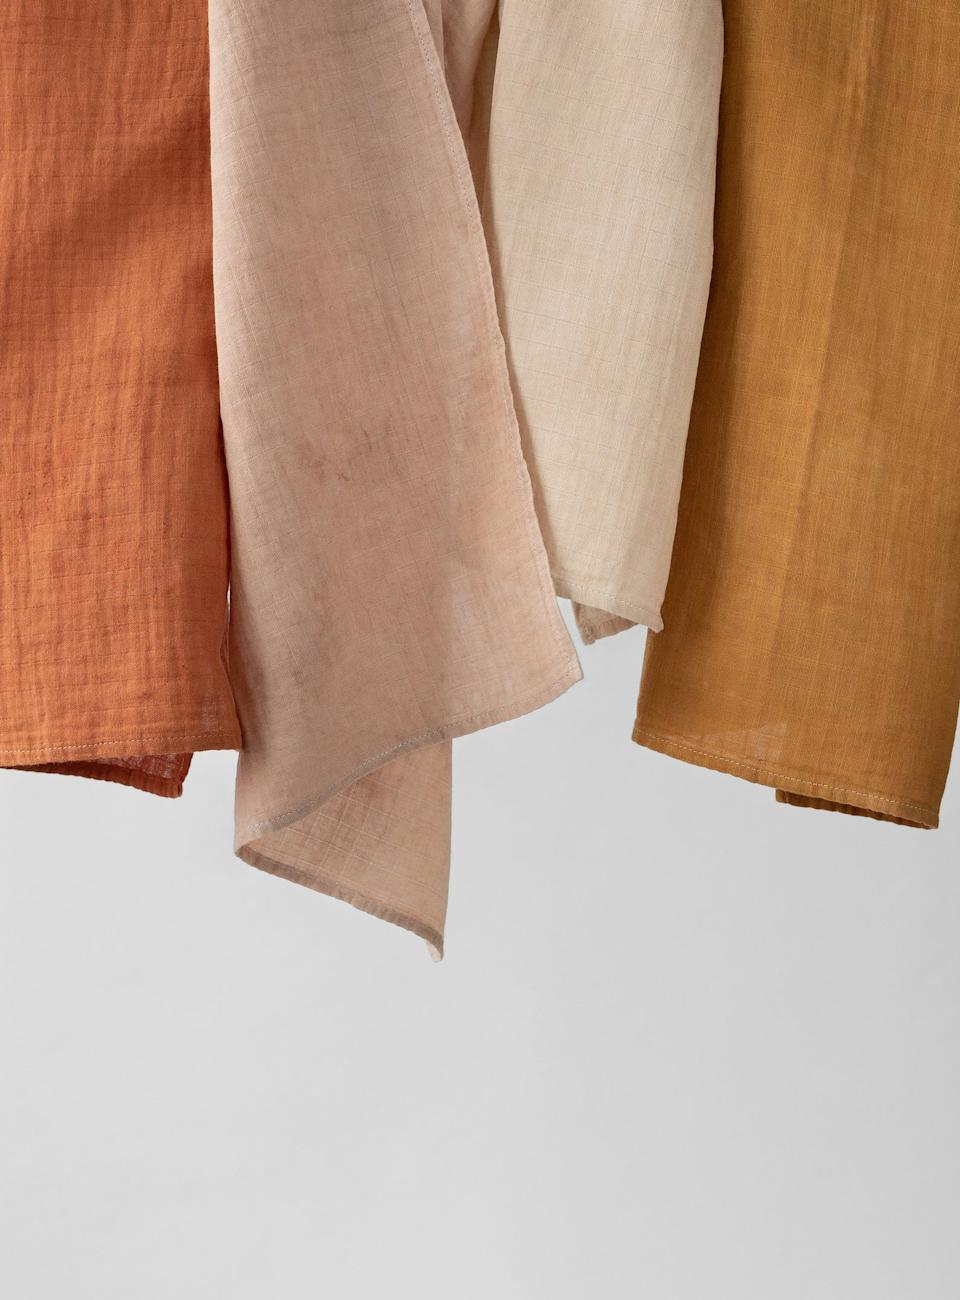 La Petite Leonne naturally dyed tea towel, from $26.